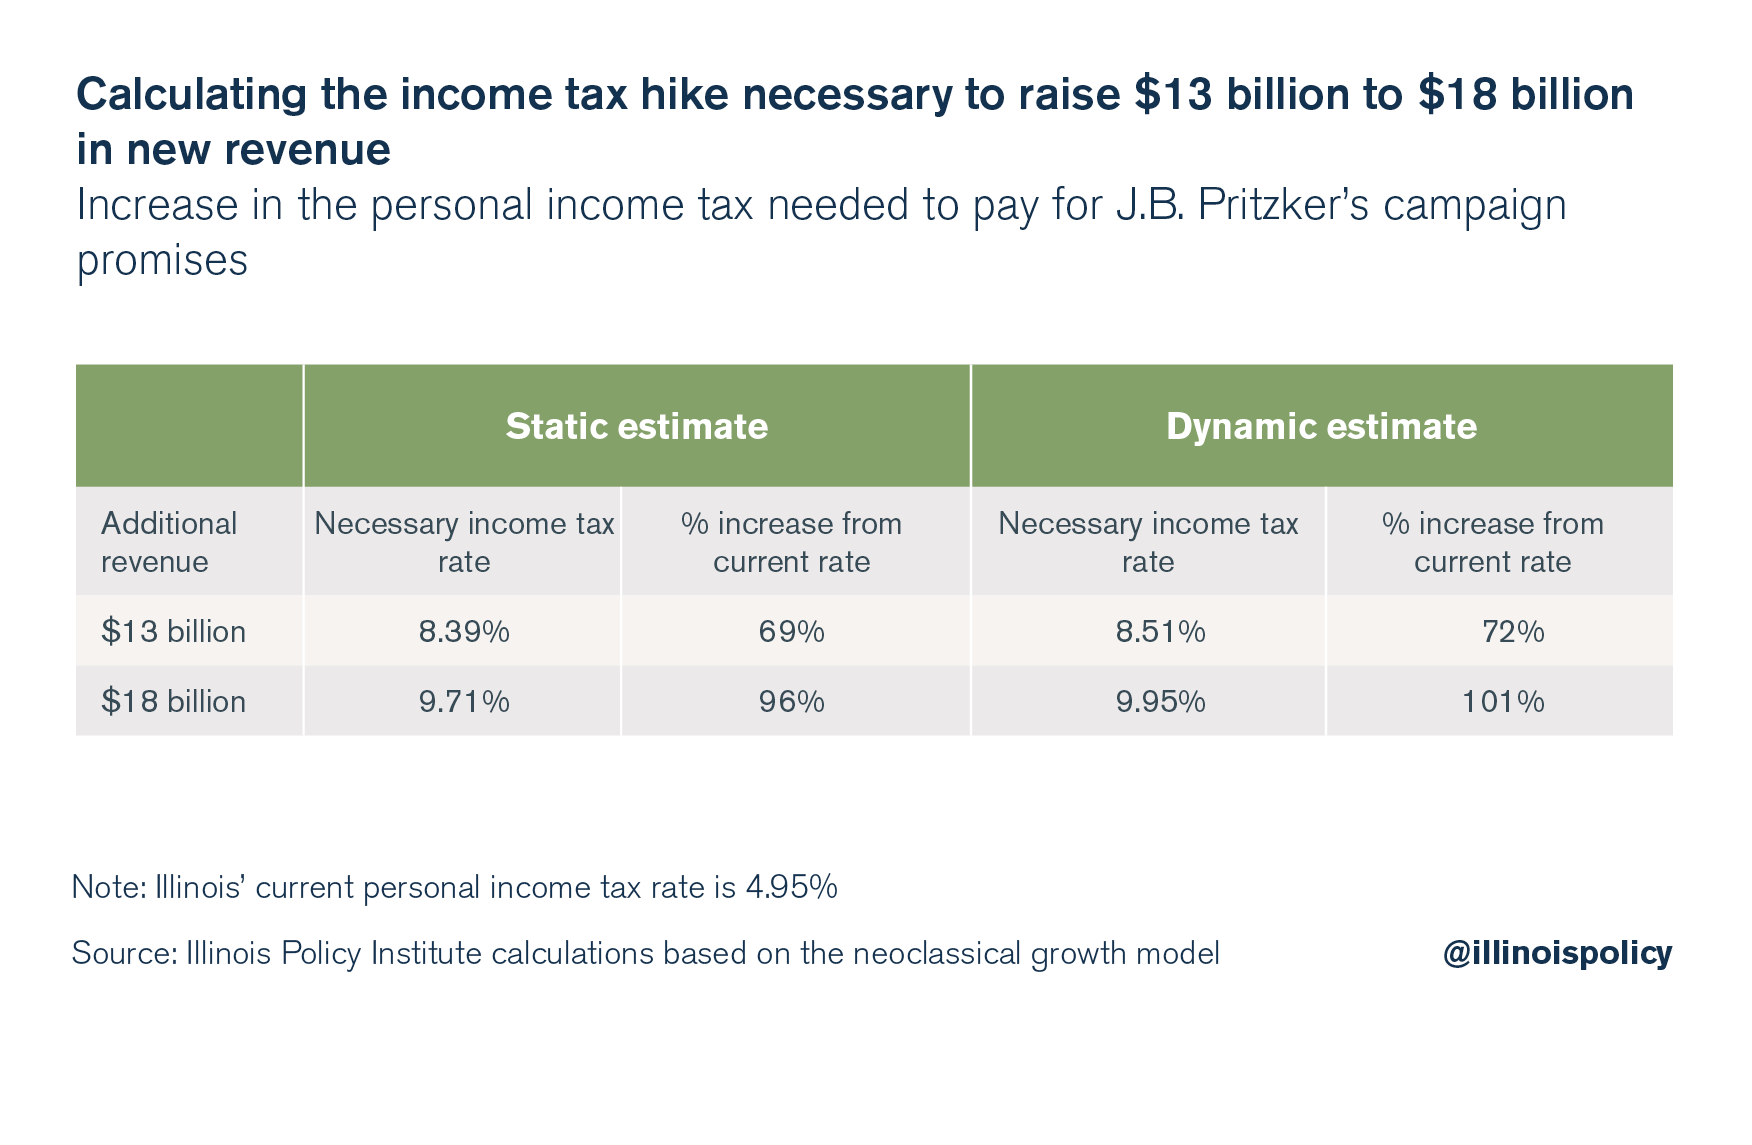 Pritzker price tag: Candidate's spending promises require